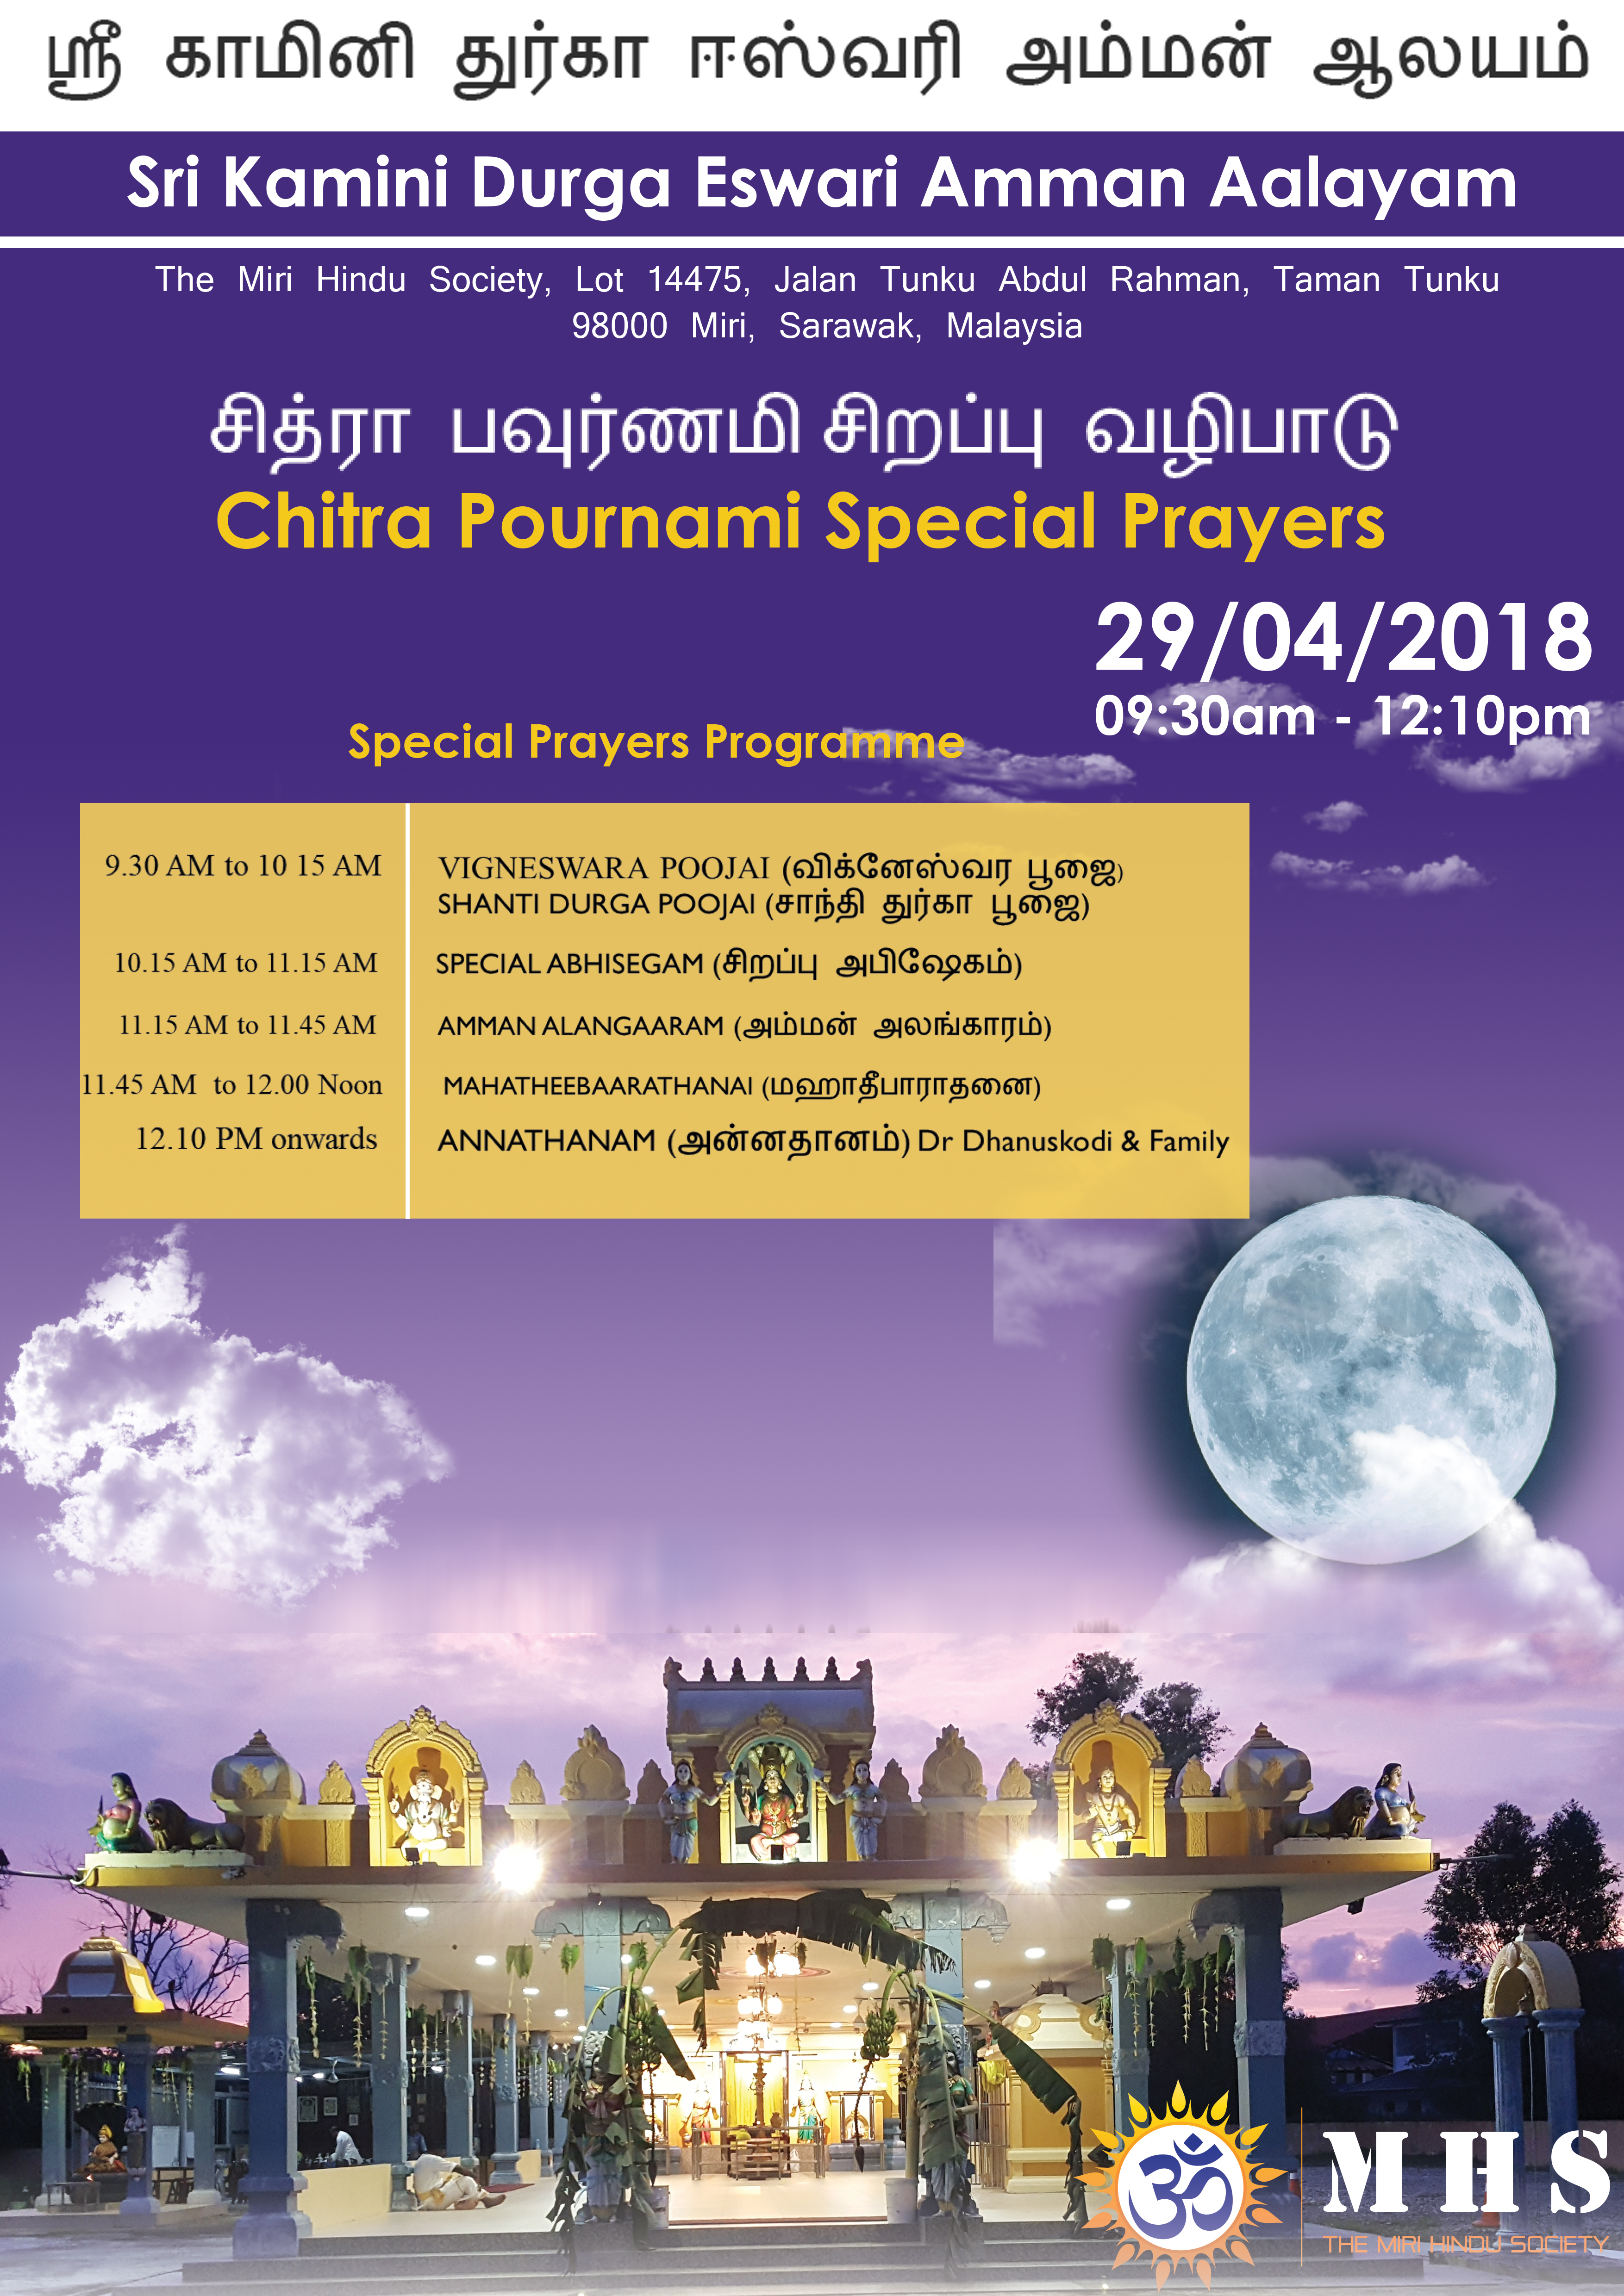 CHITRA POURNAMI (FULL MOON) CELEBRATION